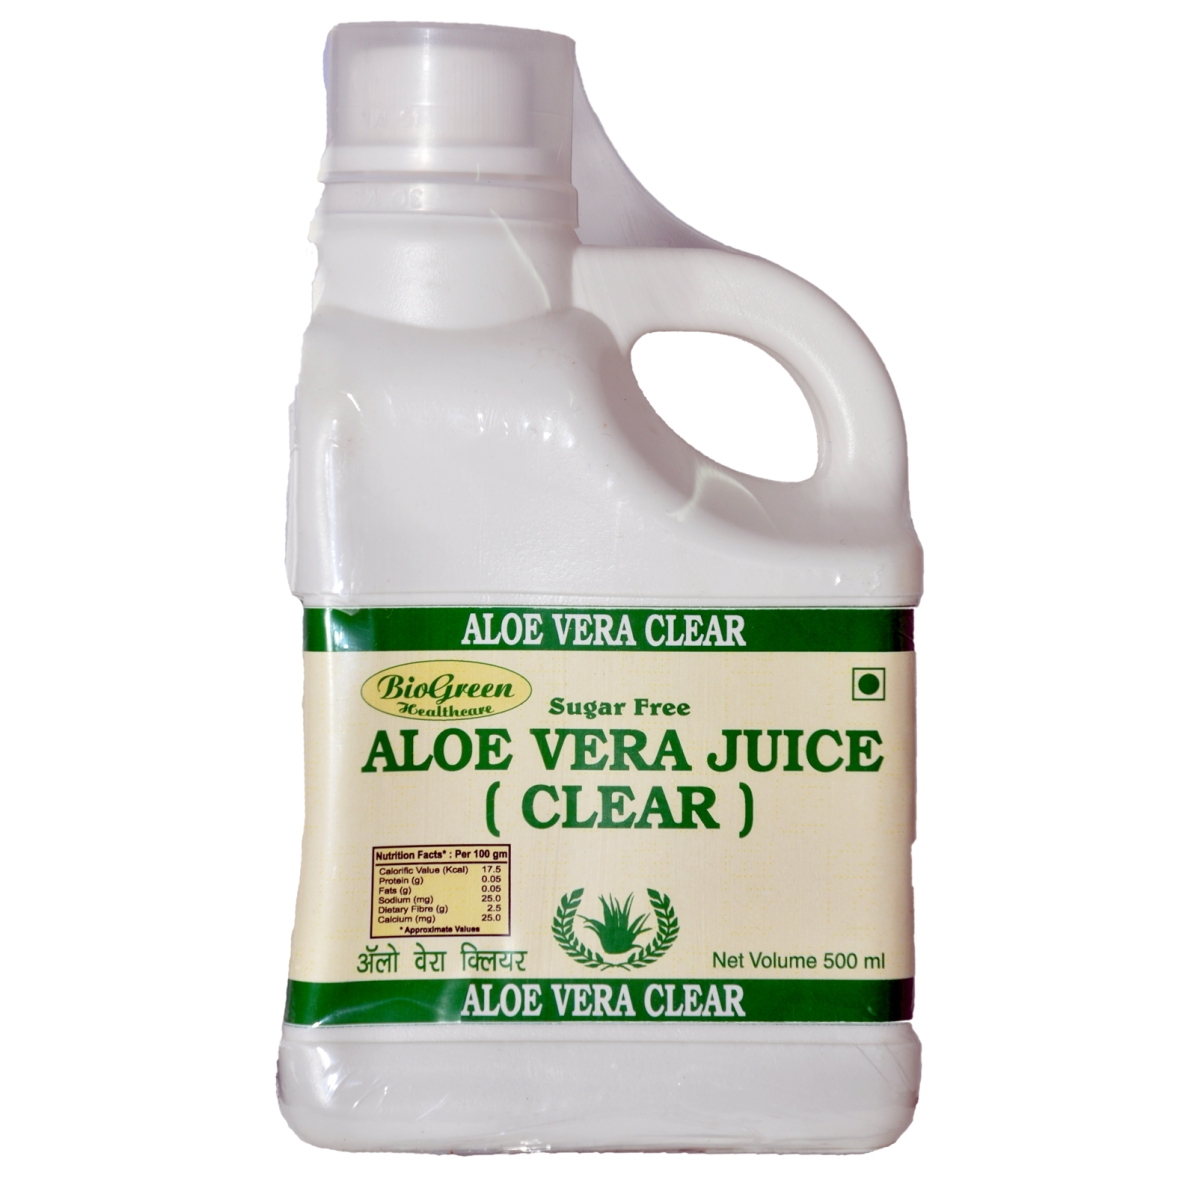 Aloe vera Clear Juice In Mayur Vihar